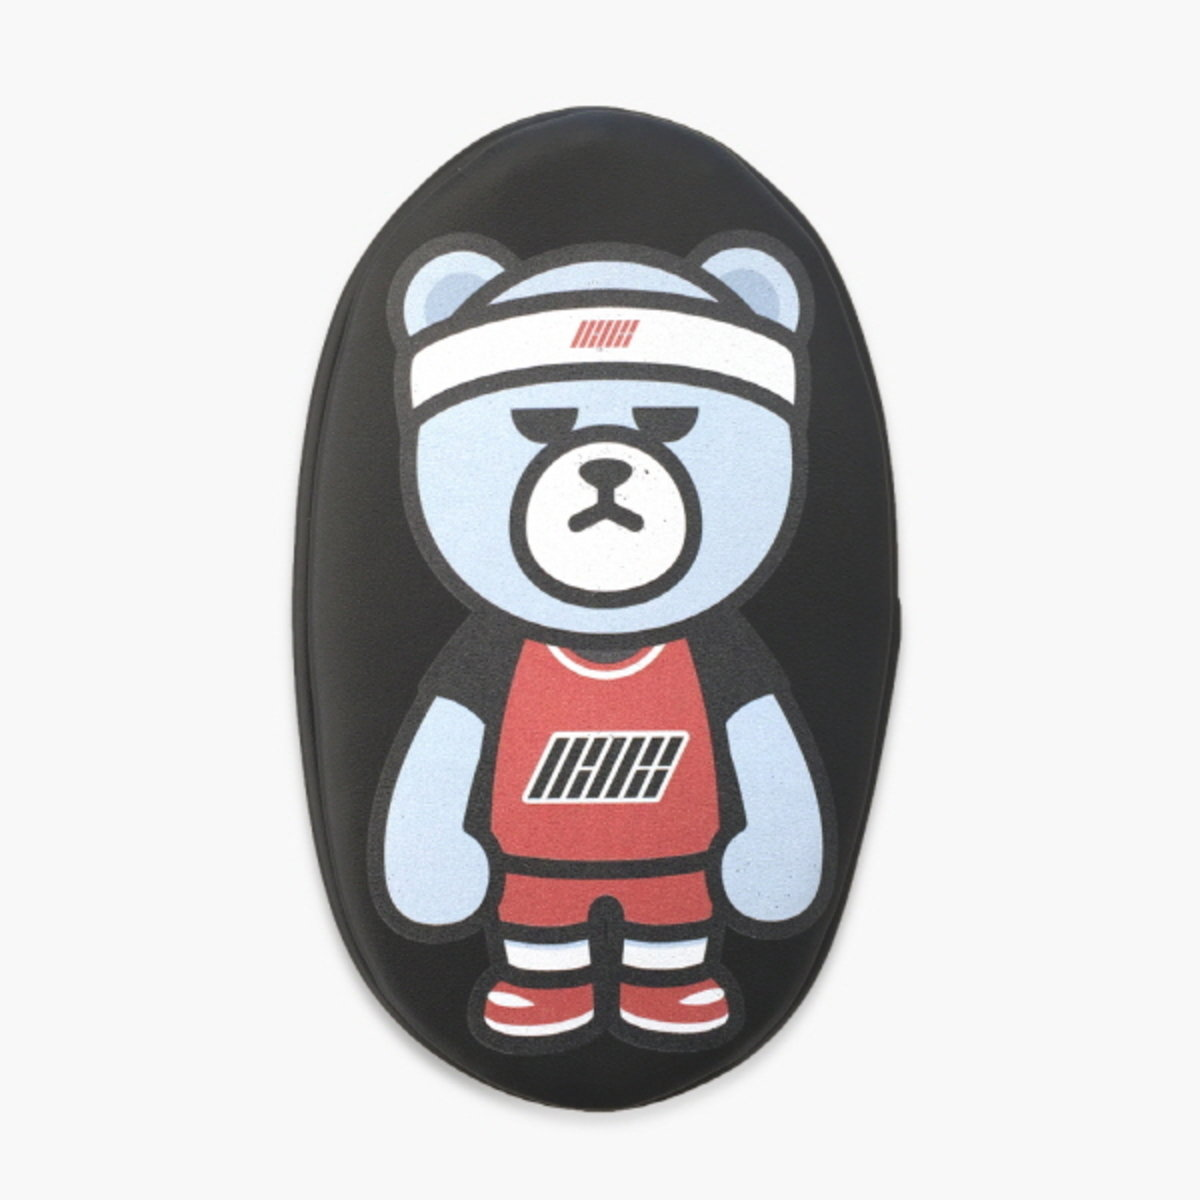 iKON - KRUNK X iKON 化妝袋 [iKONCERT 2016 'SHOWTIME TOUR' MD]